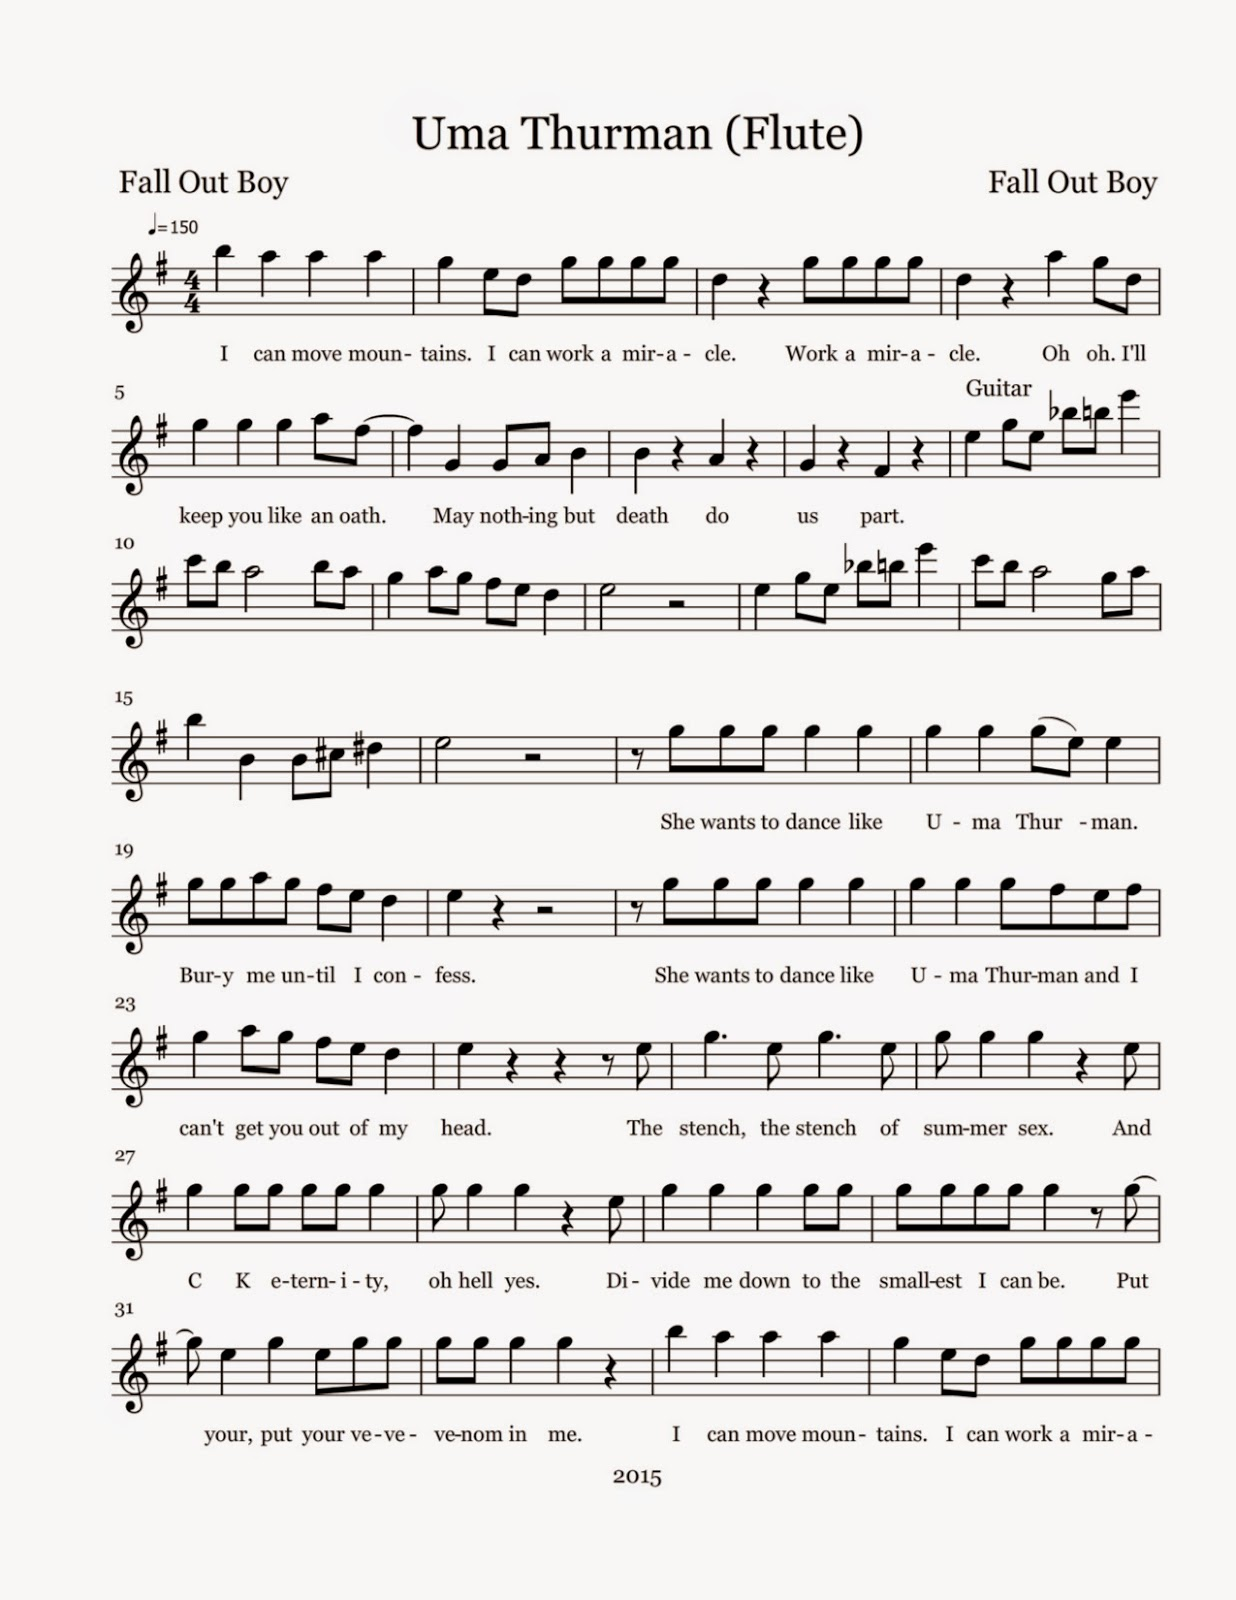 Flute Sheet Music: Uma Thurman - Sheet Music